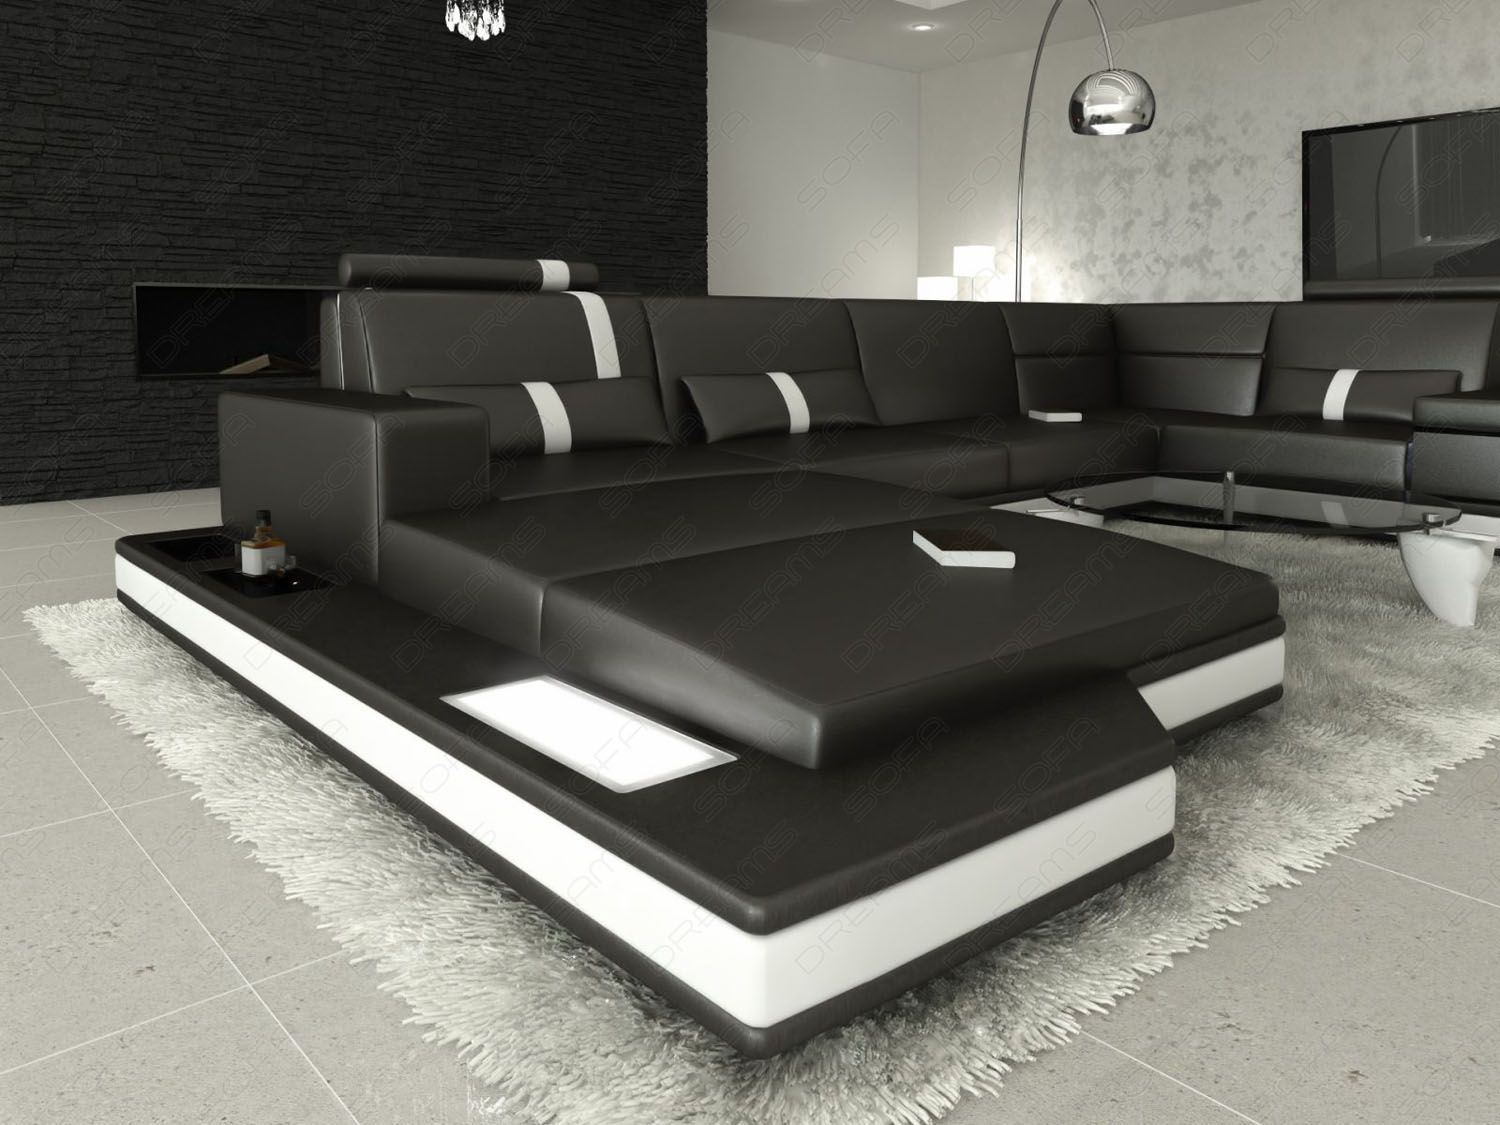 Design A Couch Sofas And Ledersofa Ledersofa Wohnlandschaft Messana